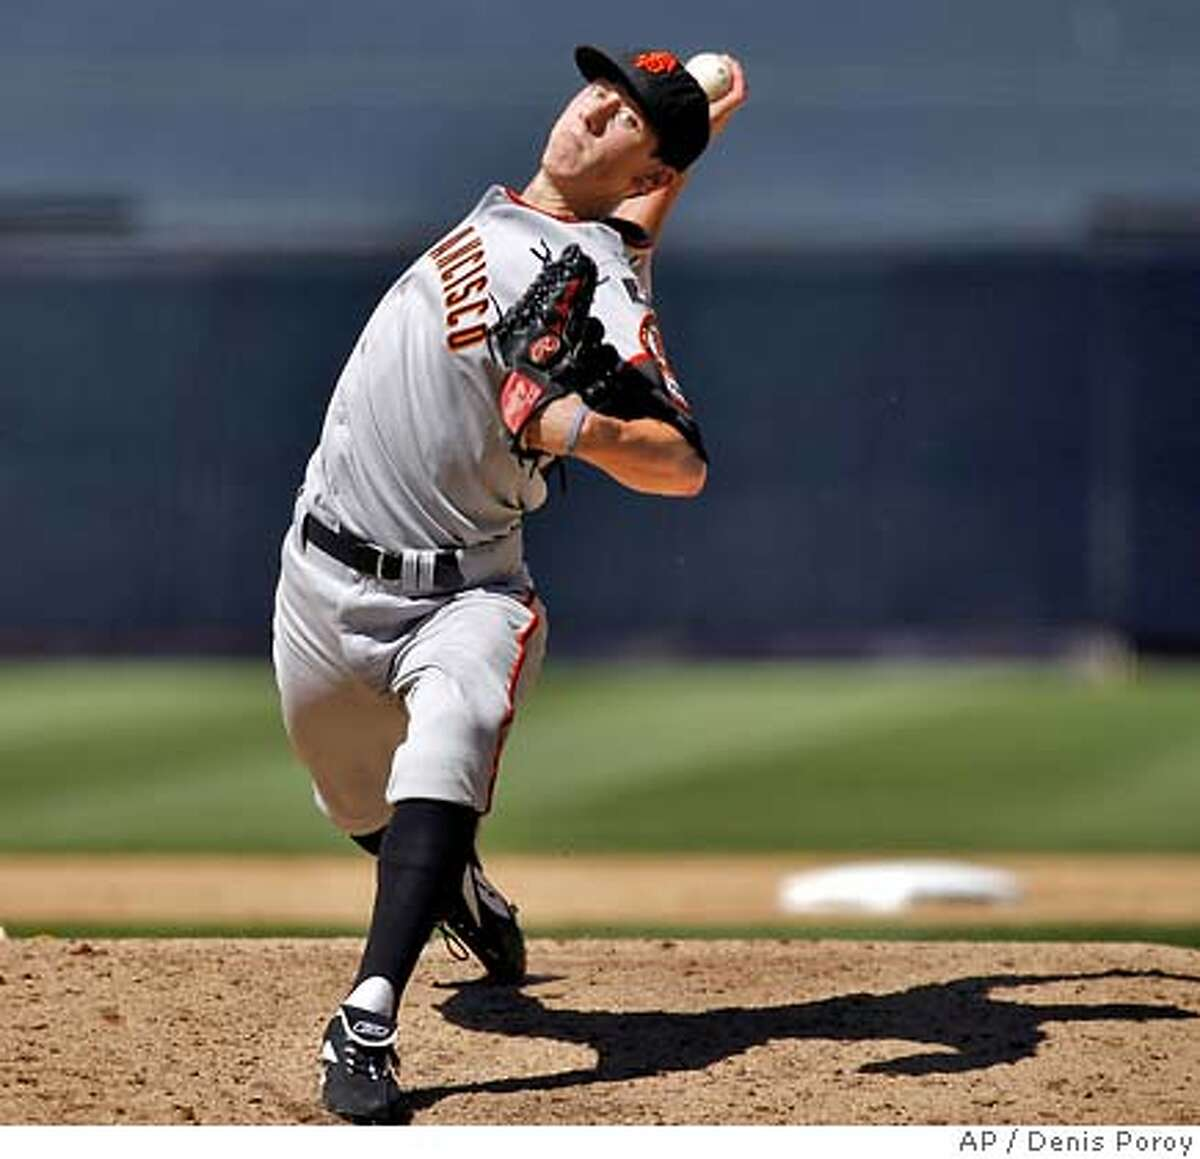 San Francisco Giants pitcher Tim Lincecum delivers during the first inning of a baseball game against the San Diego Padres Sunday, Sept. 16, 2007, in San Diego. (AP Photo/Denis Poroy)